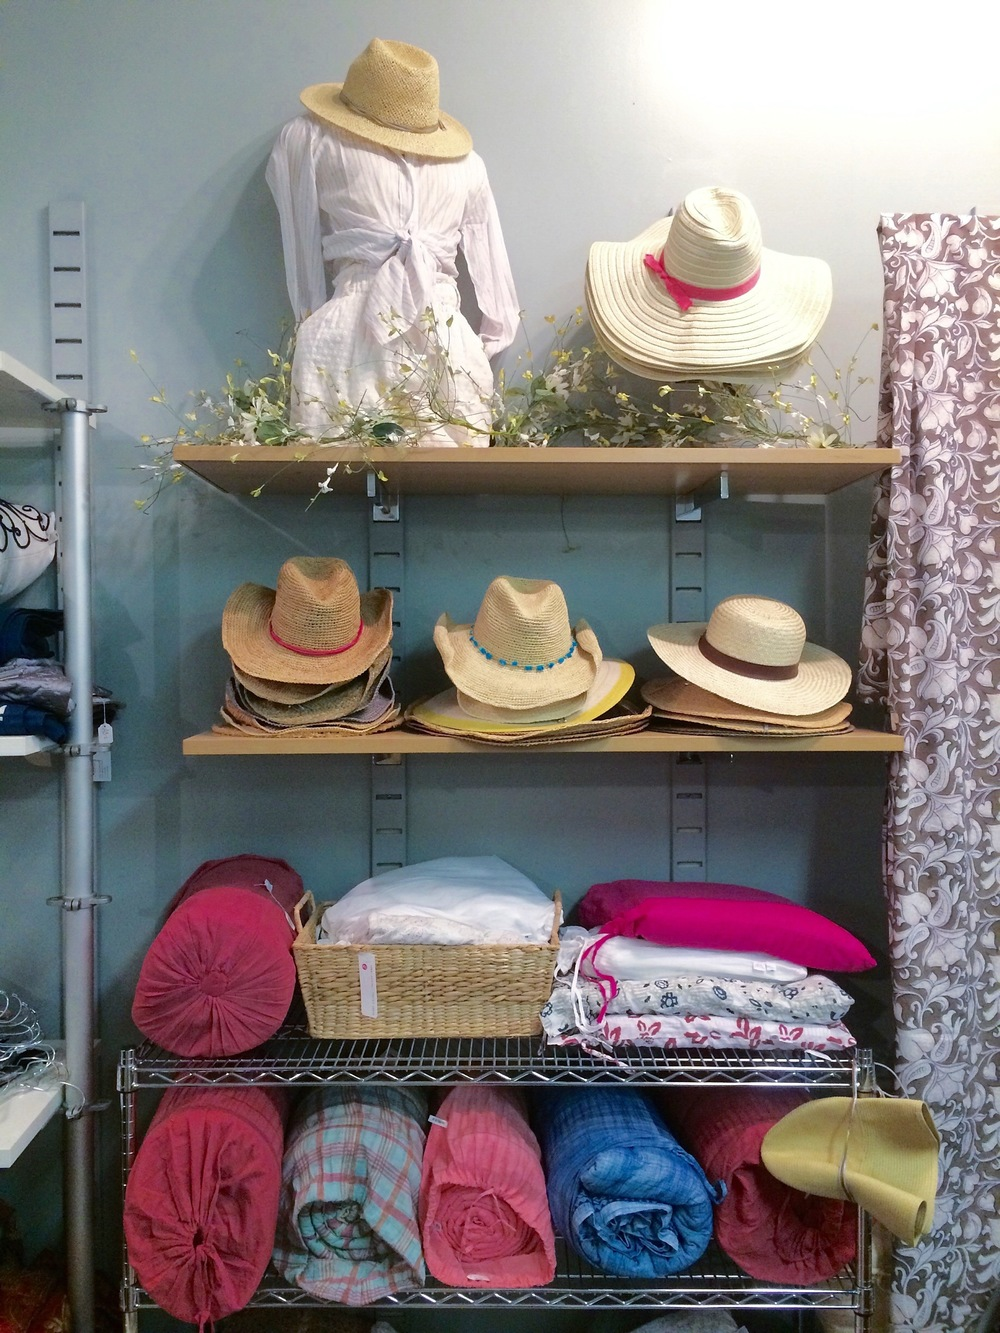 Hats and home goods at UAL_Photo by Stella Shops.jpg